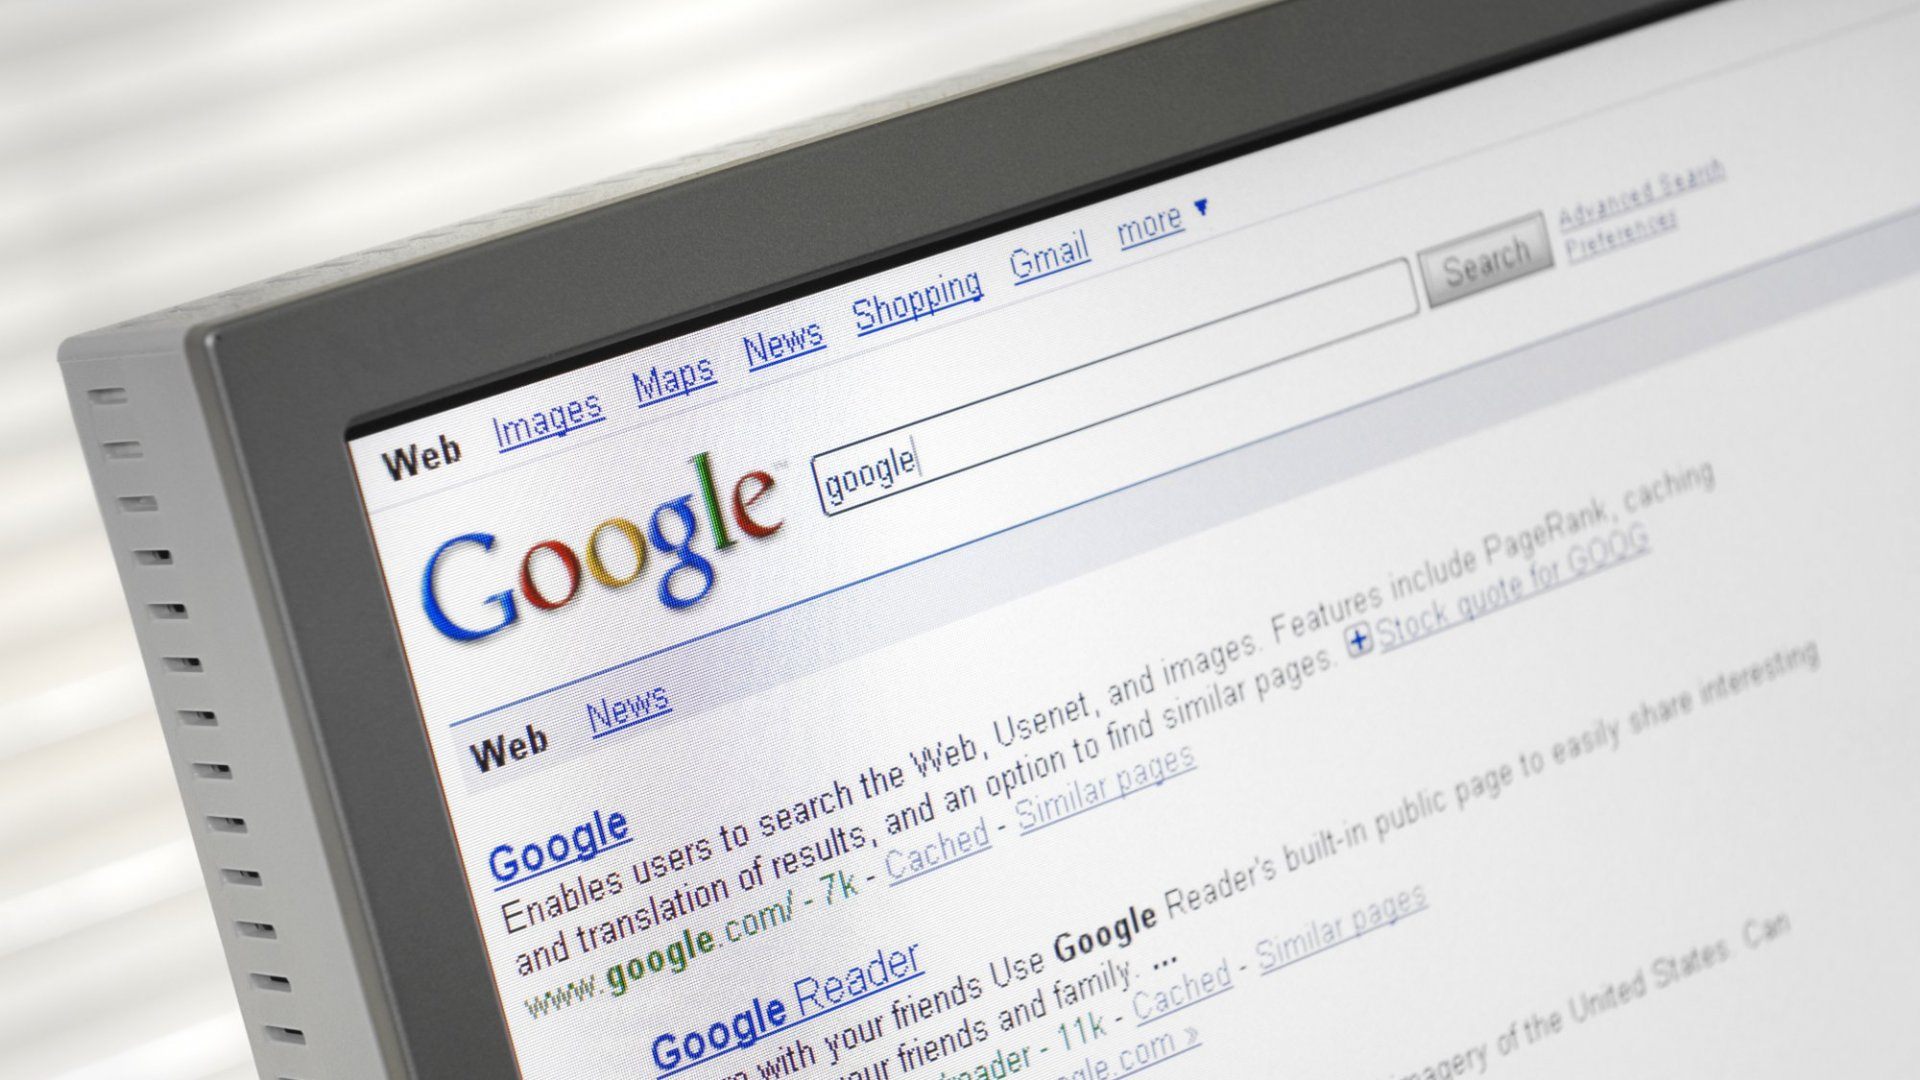 The Sure-Fire Way to Get Google to Love Your Website